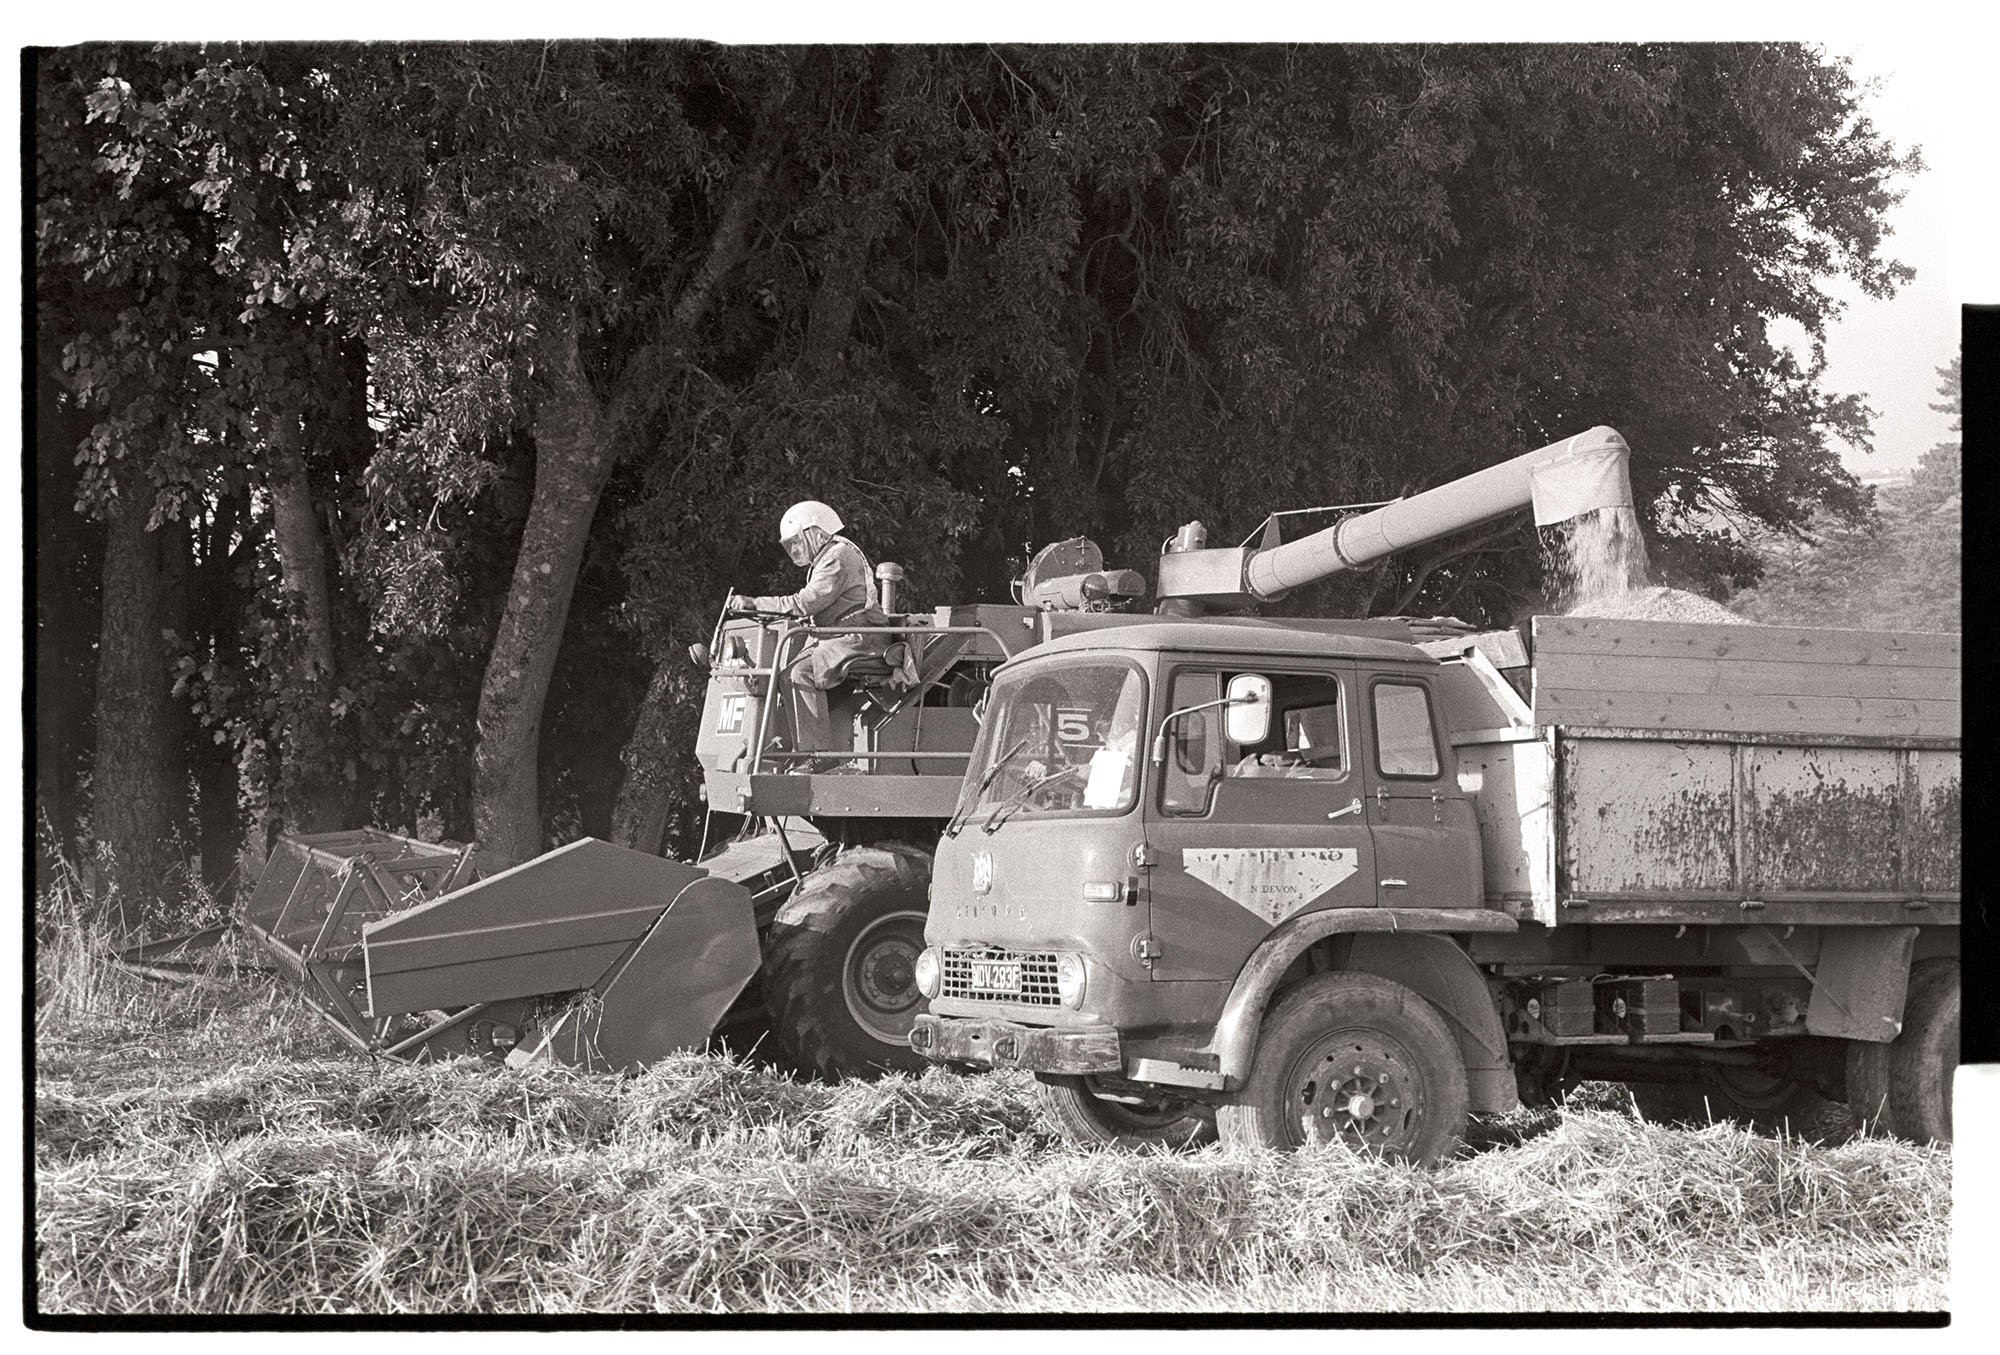 Combine harvester with driver wearing dust helmet, loading grain onto lorry. <br /> [Mr Rogers driving a combine harvester in a field at Huish Barton near Merton. He is wearing a dust helmet. The combine harvester is loading grain into a lorry.]